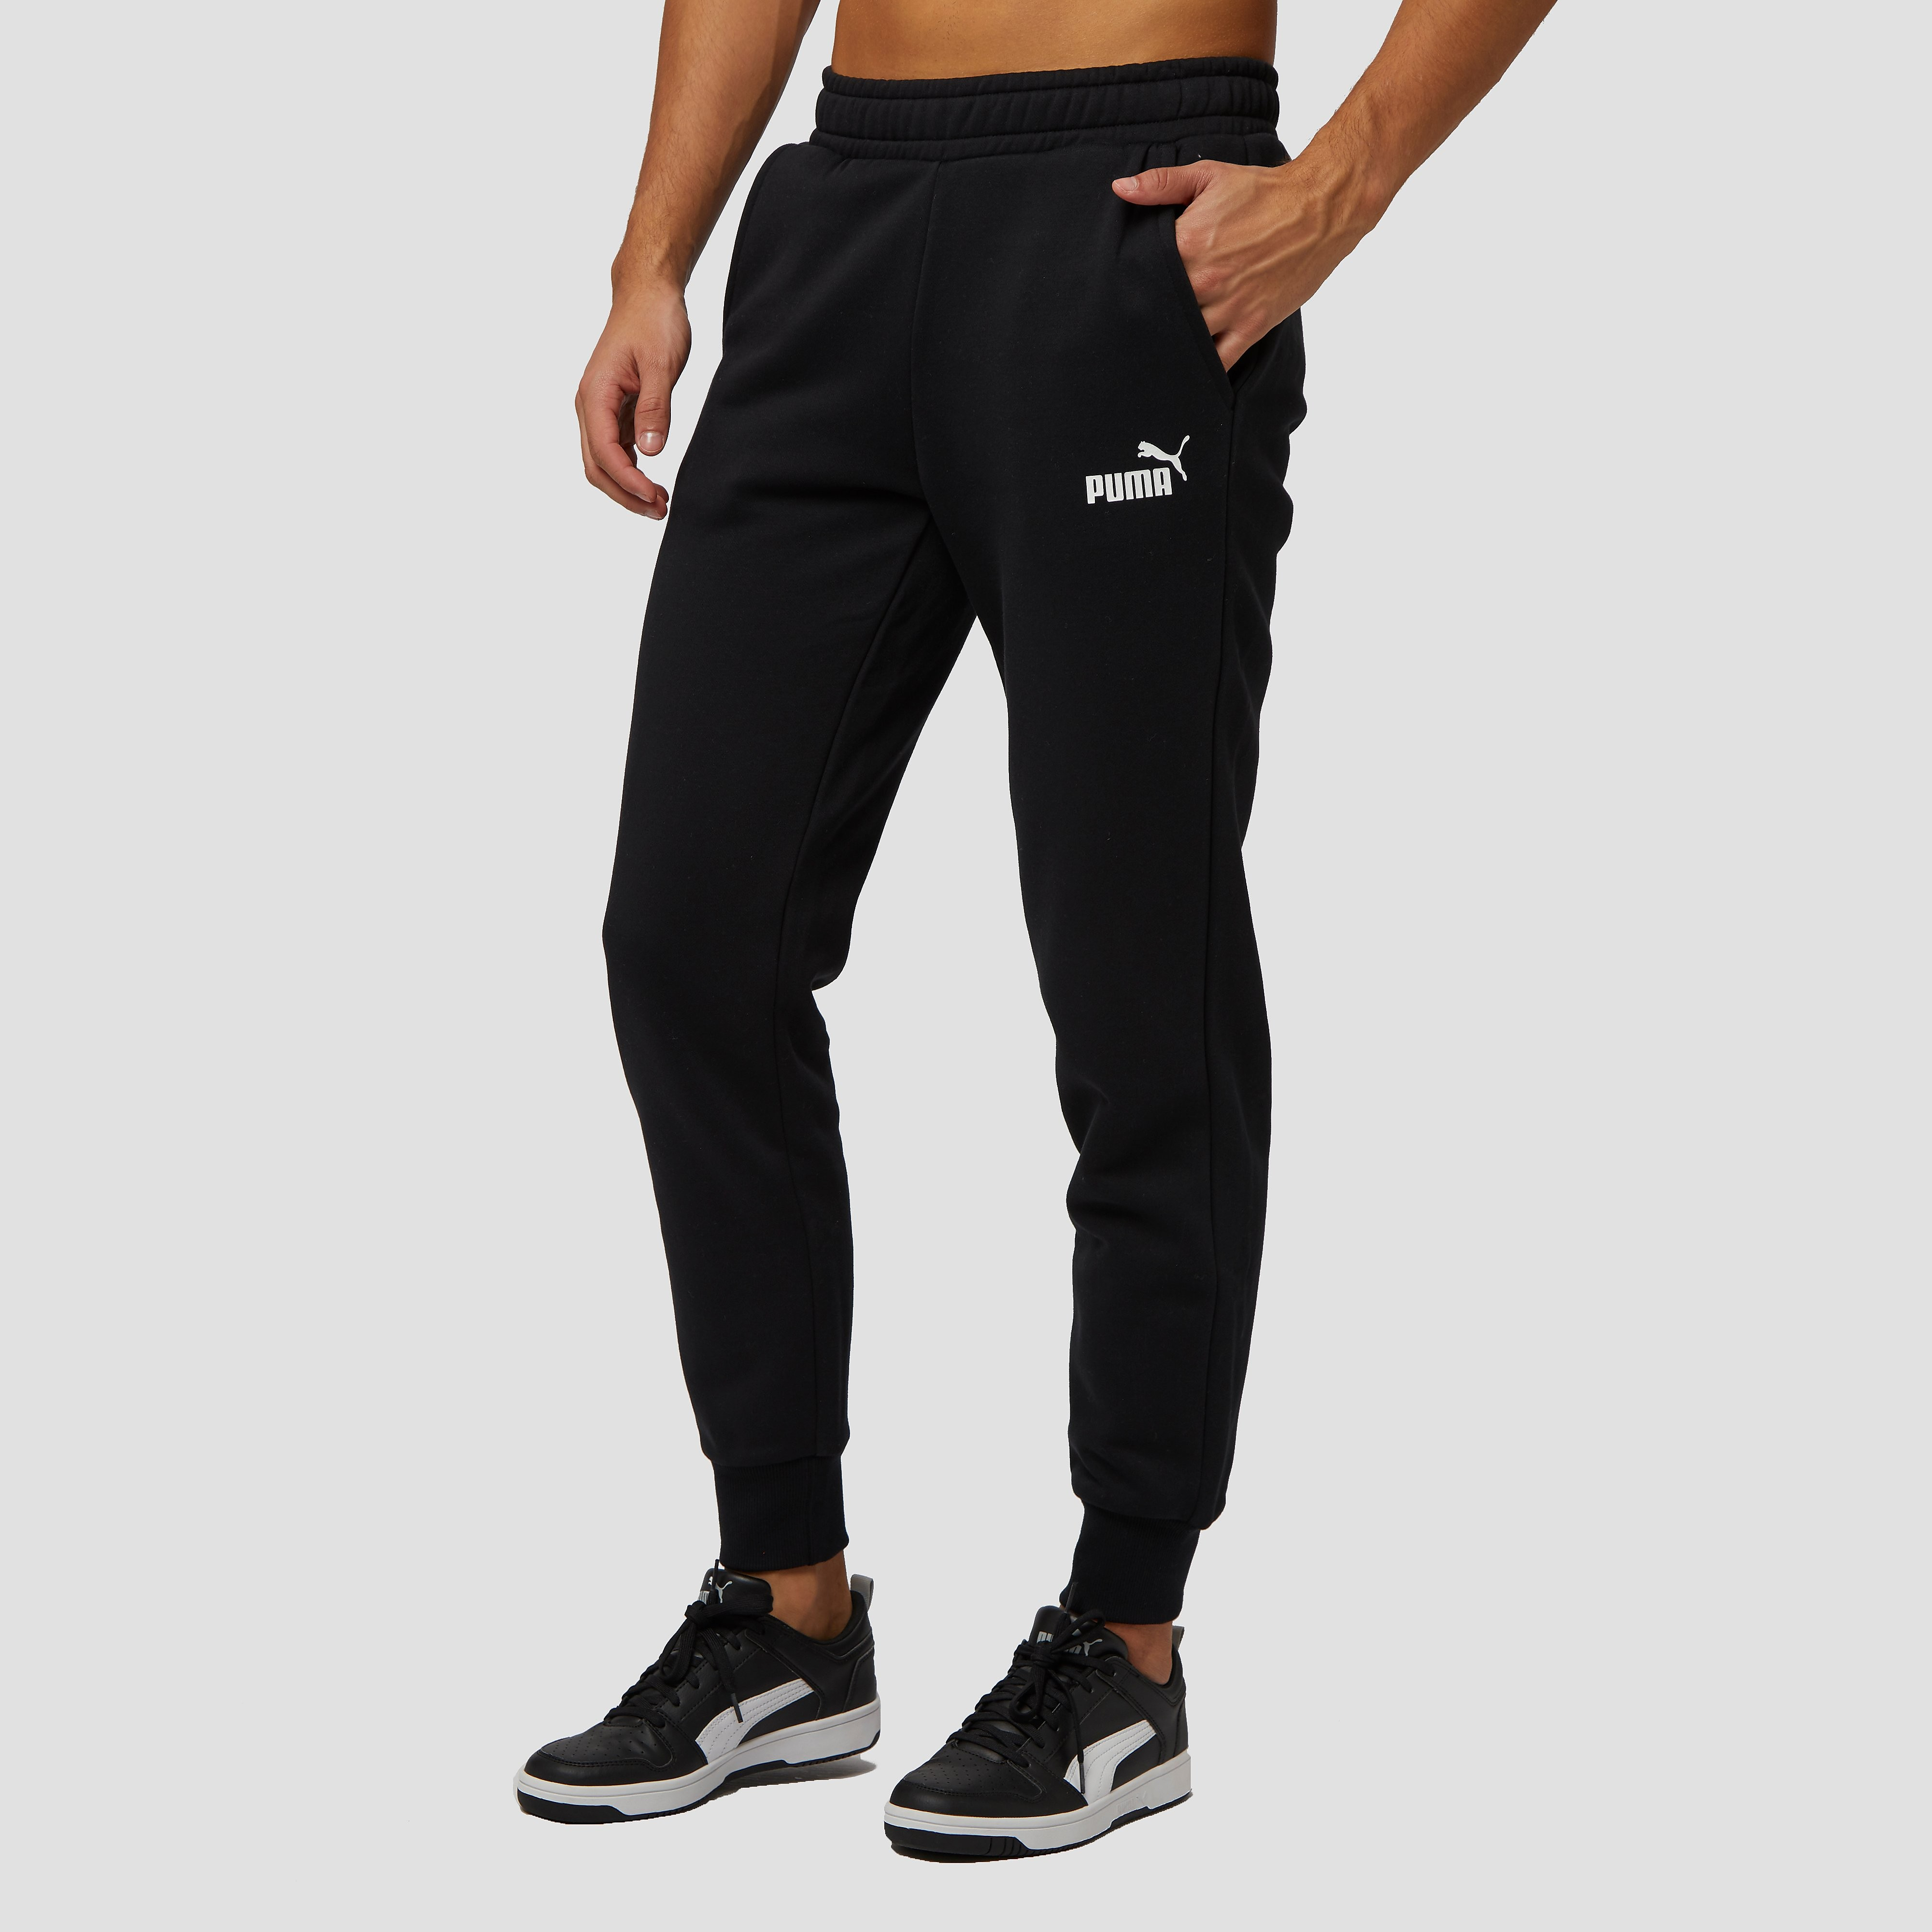 PUMA NO.1 LOGO JOGGINGBROEK